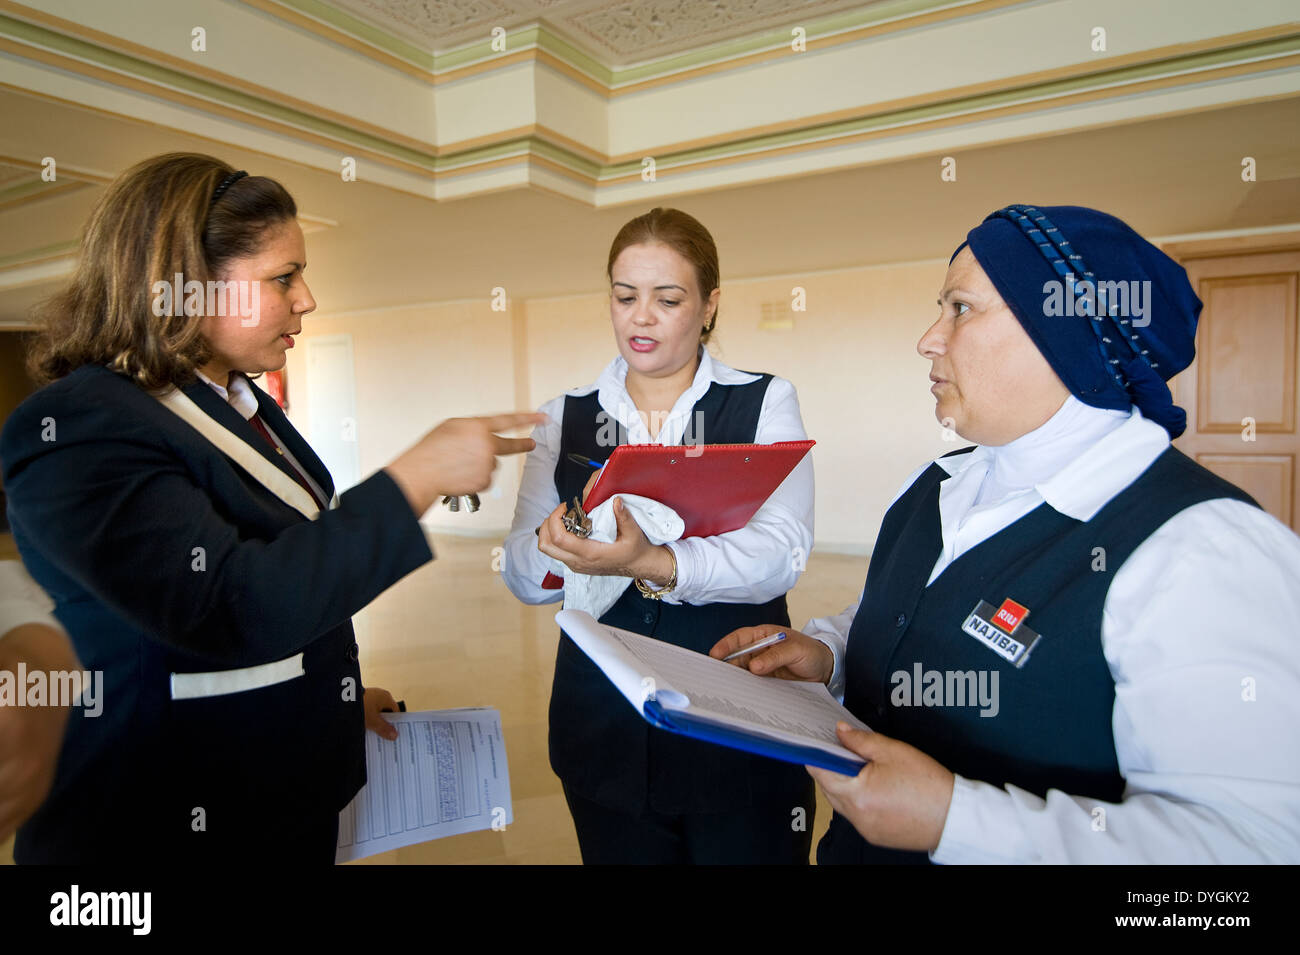 tunisia hammamet the tourism industry offers lots of jobs for tunisia hammamet the tourism industry offers lots of jobs also for women